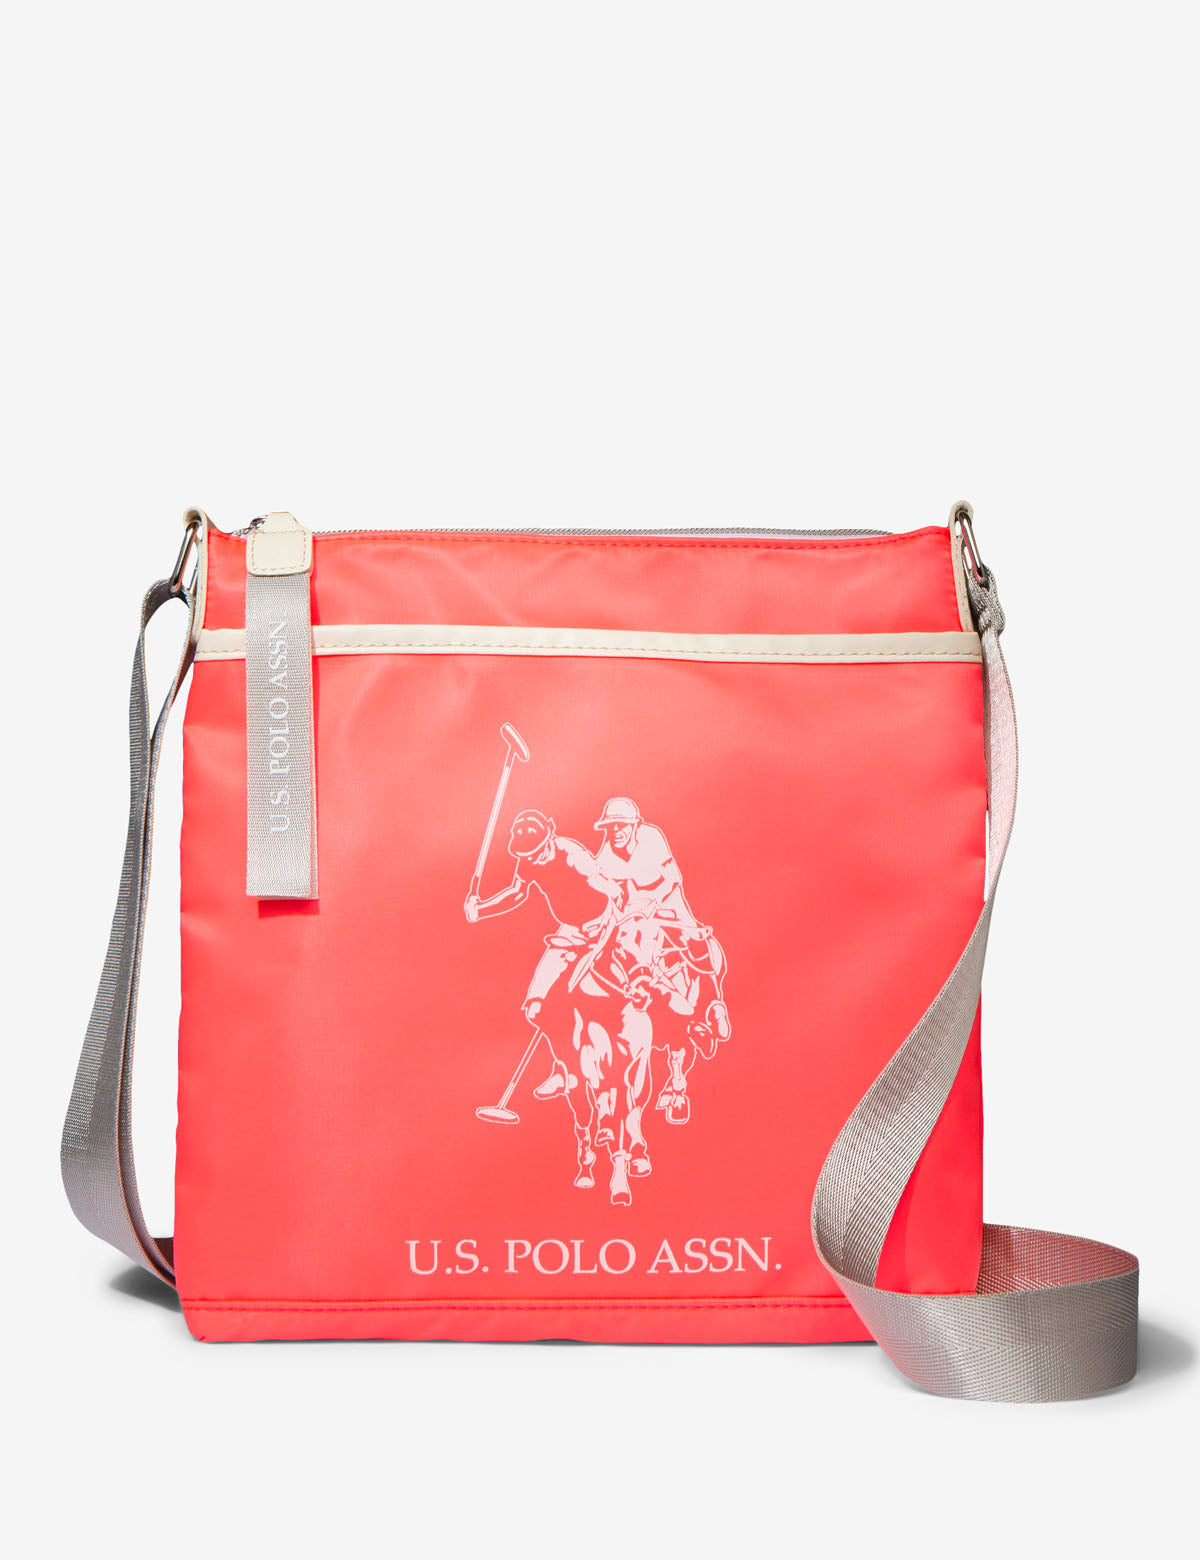 NYLON LOGO CROSSBODY BAG - U.S. Polo Assn.